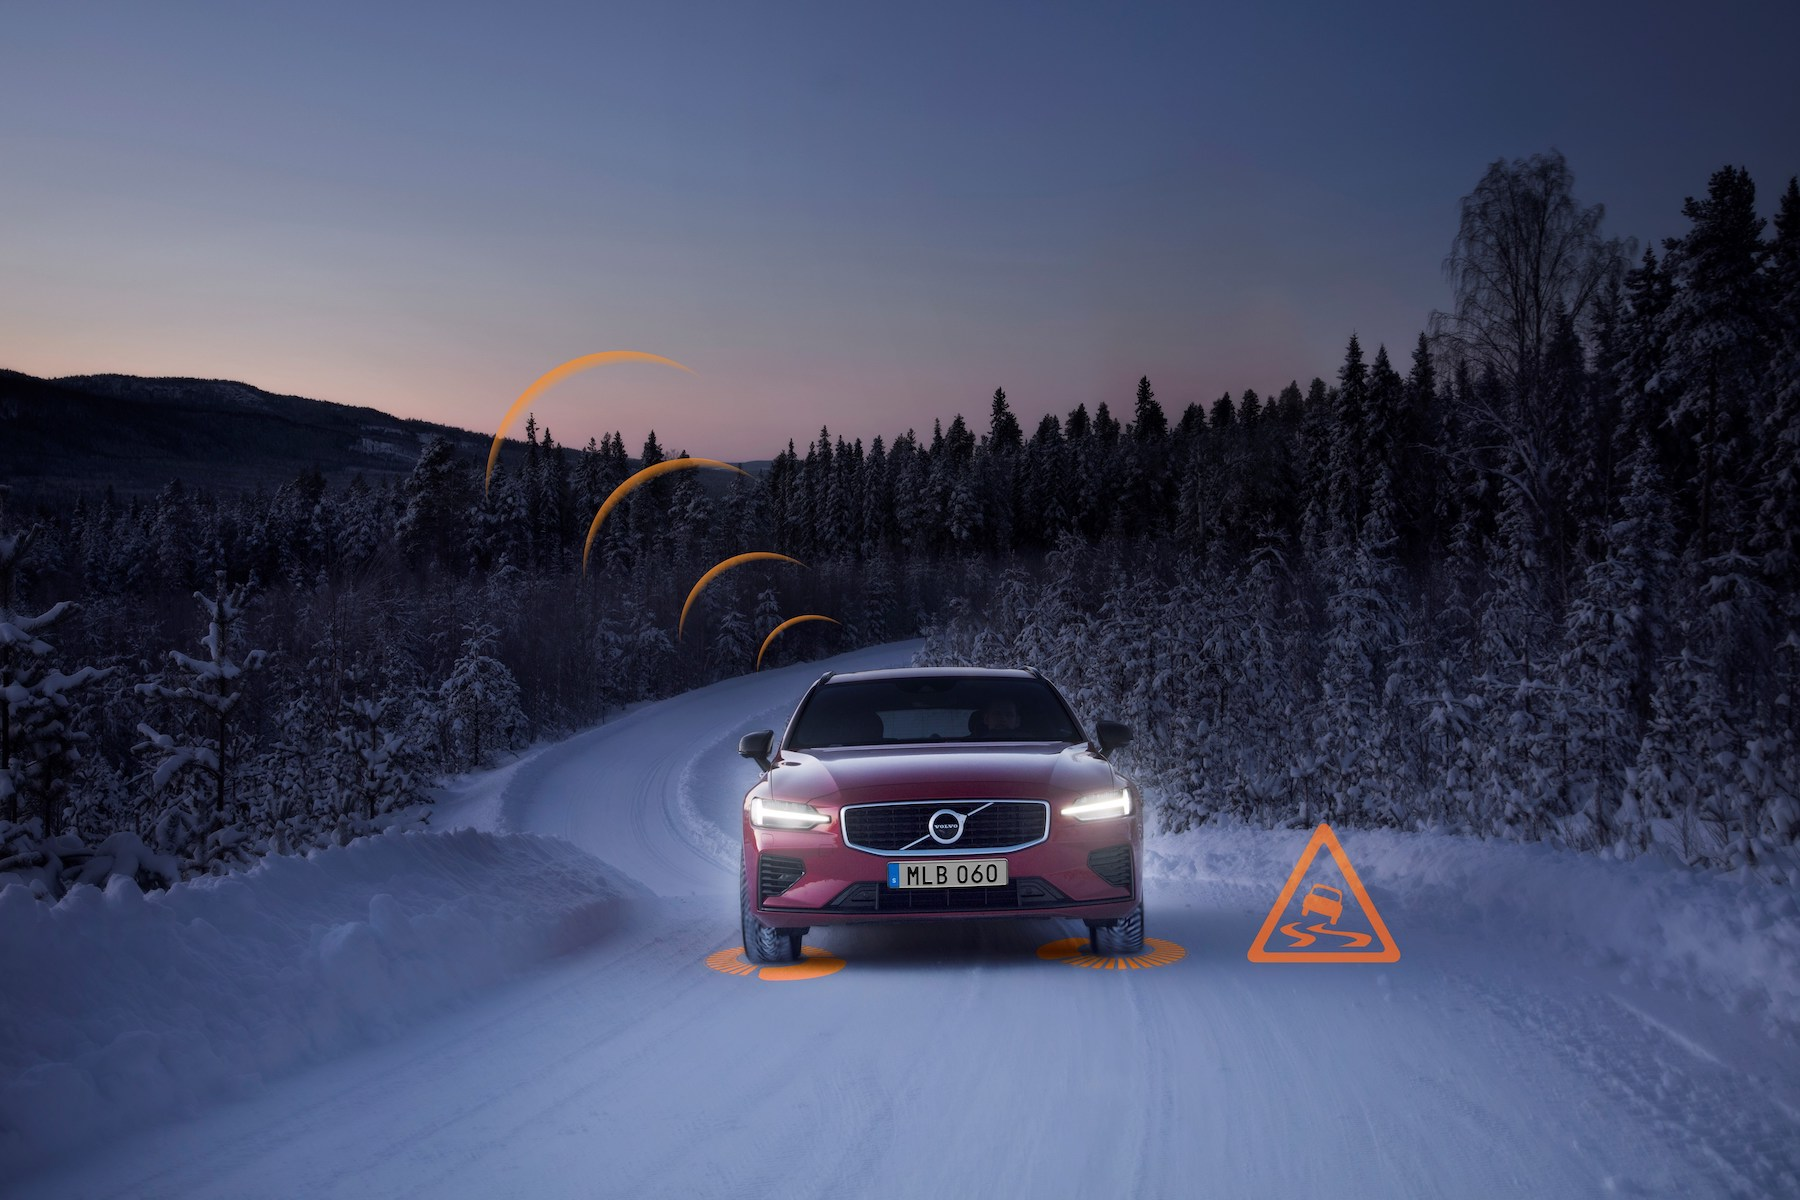 Connected Safety Slippery Road Alert Volvo Cars